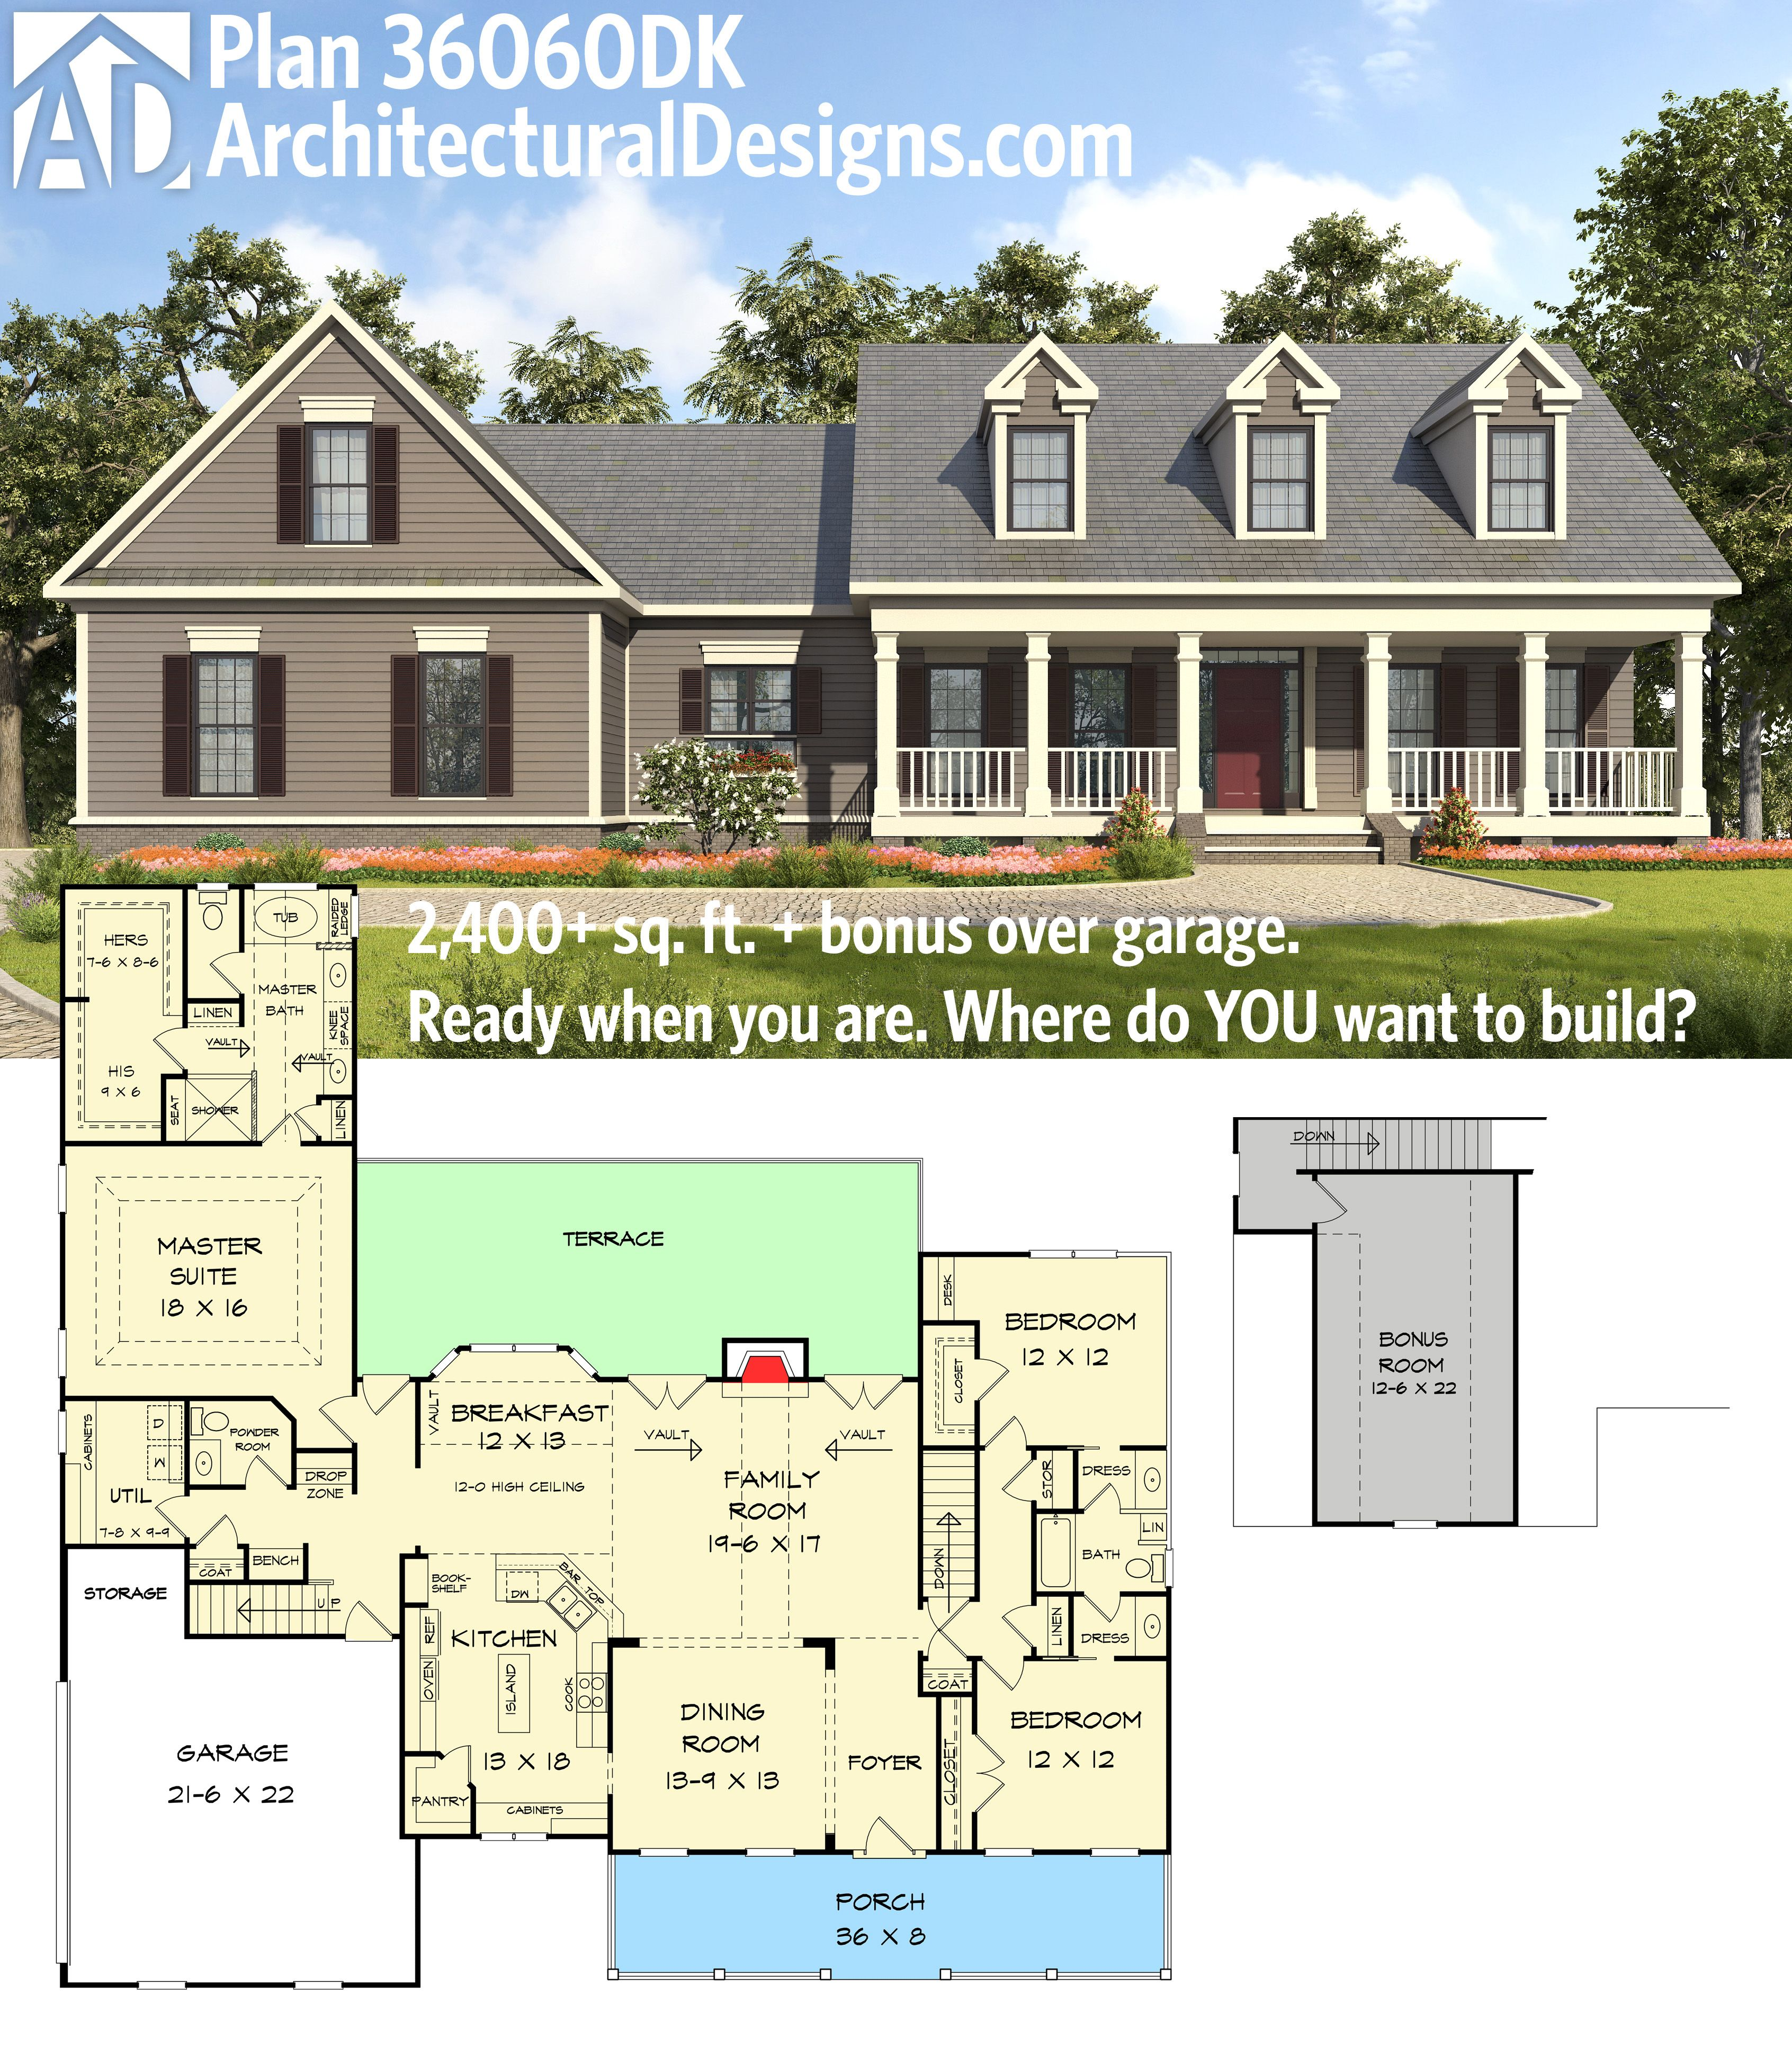 Plan dk appealing bed country house plan architectural